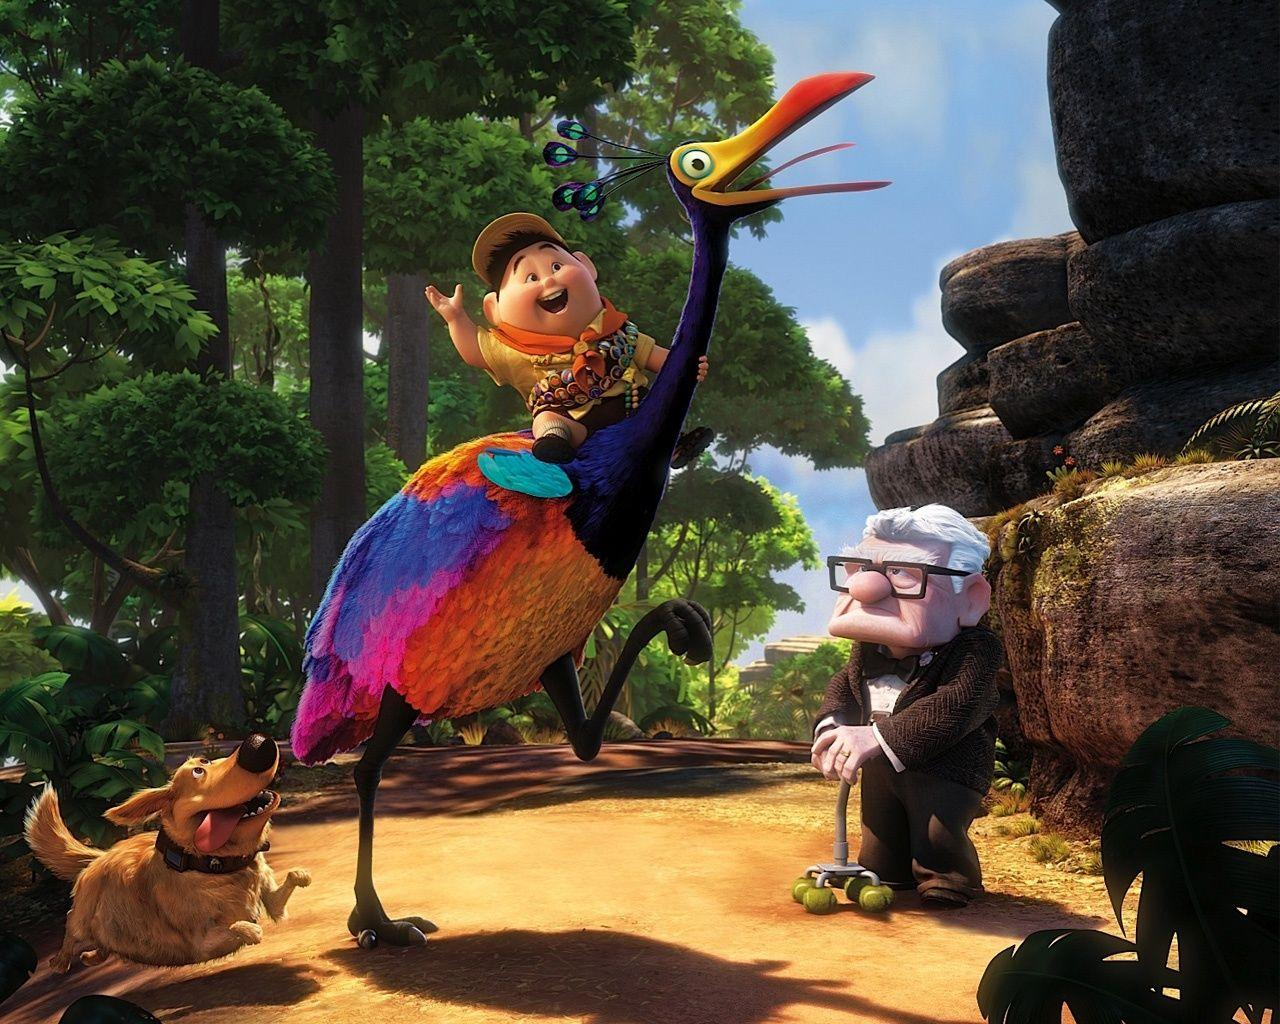 Pixar's UP Animation Movie Wallpapers in jpg format for free download